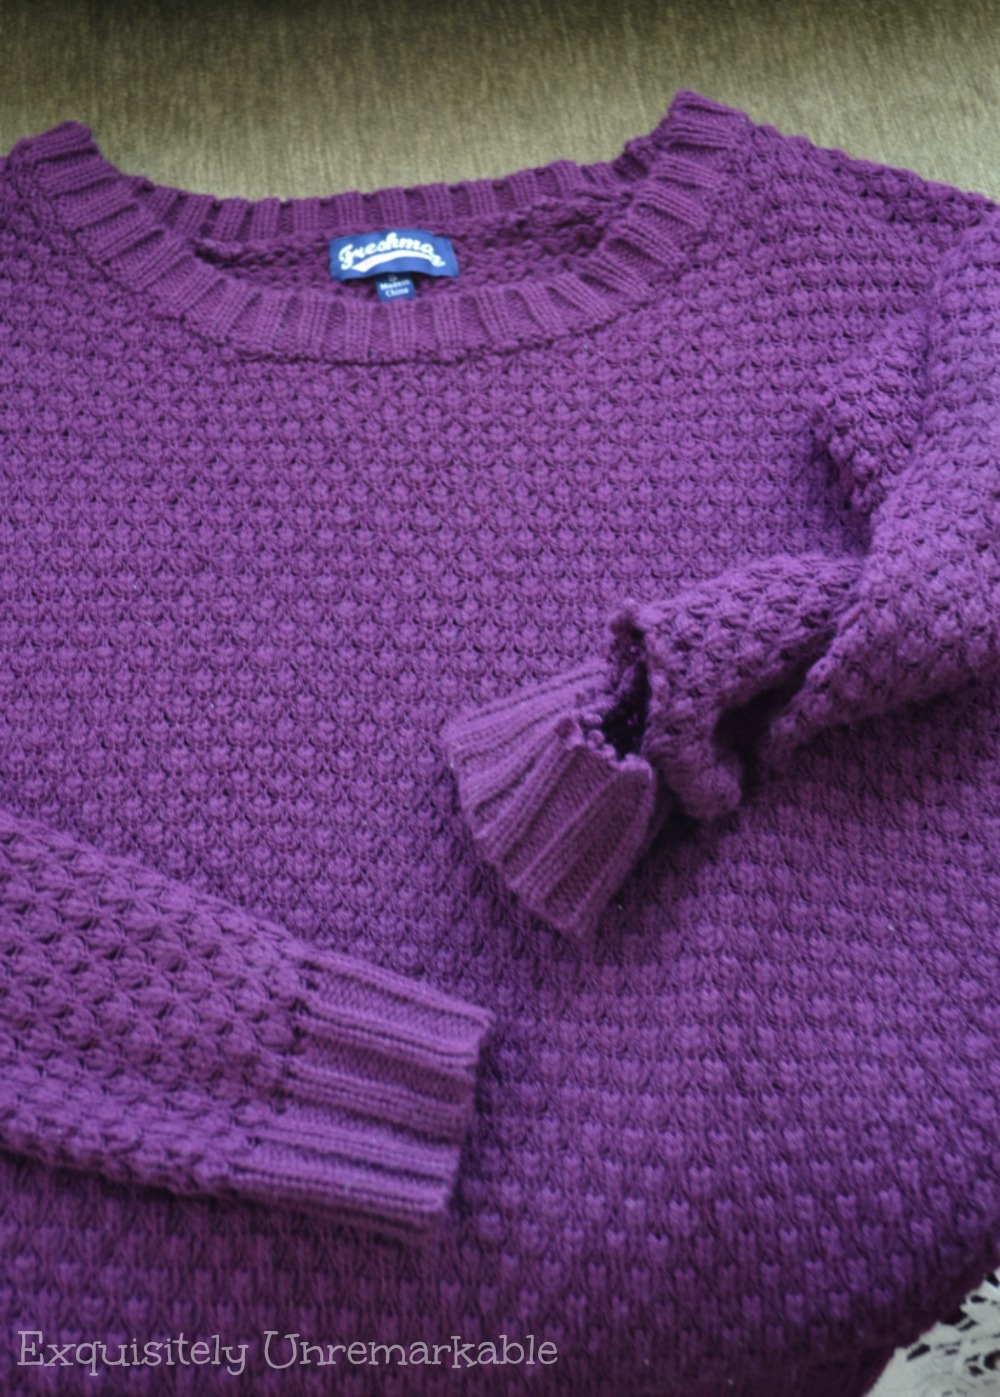 How To Fix A Ripped Sweater